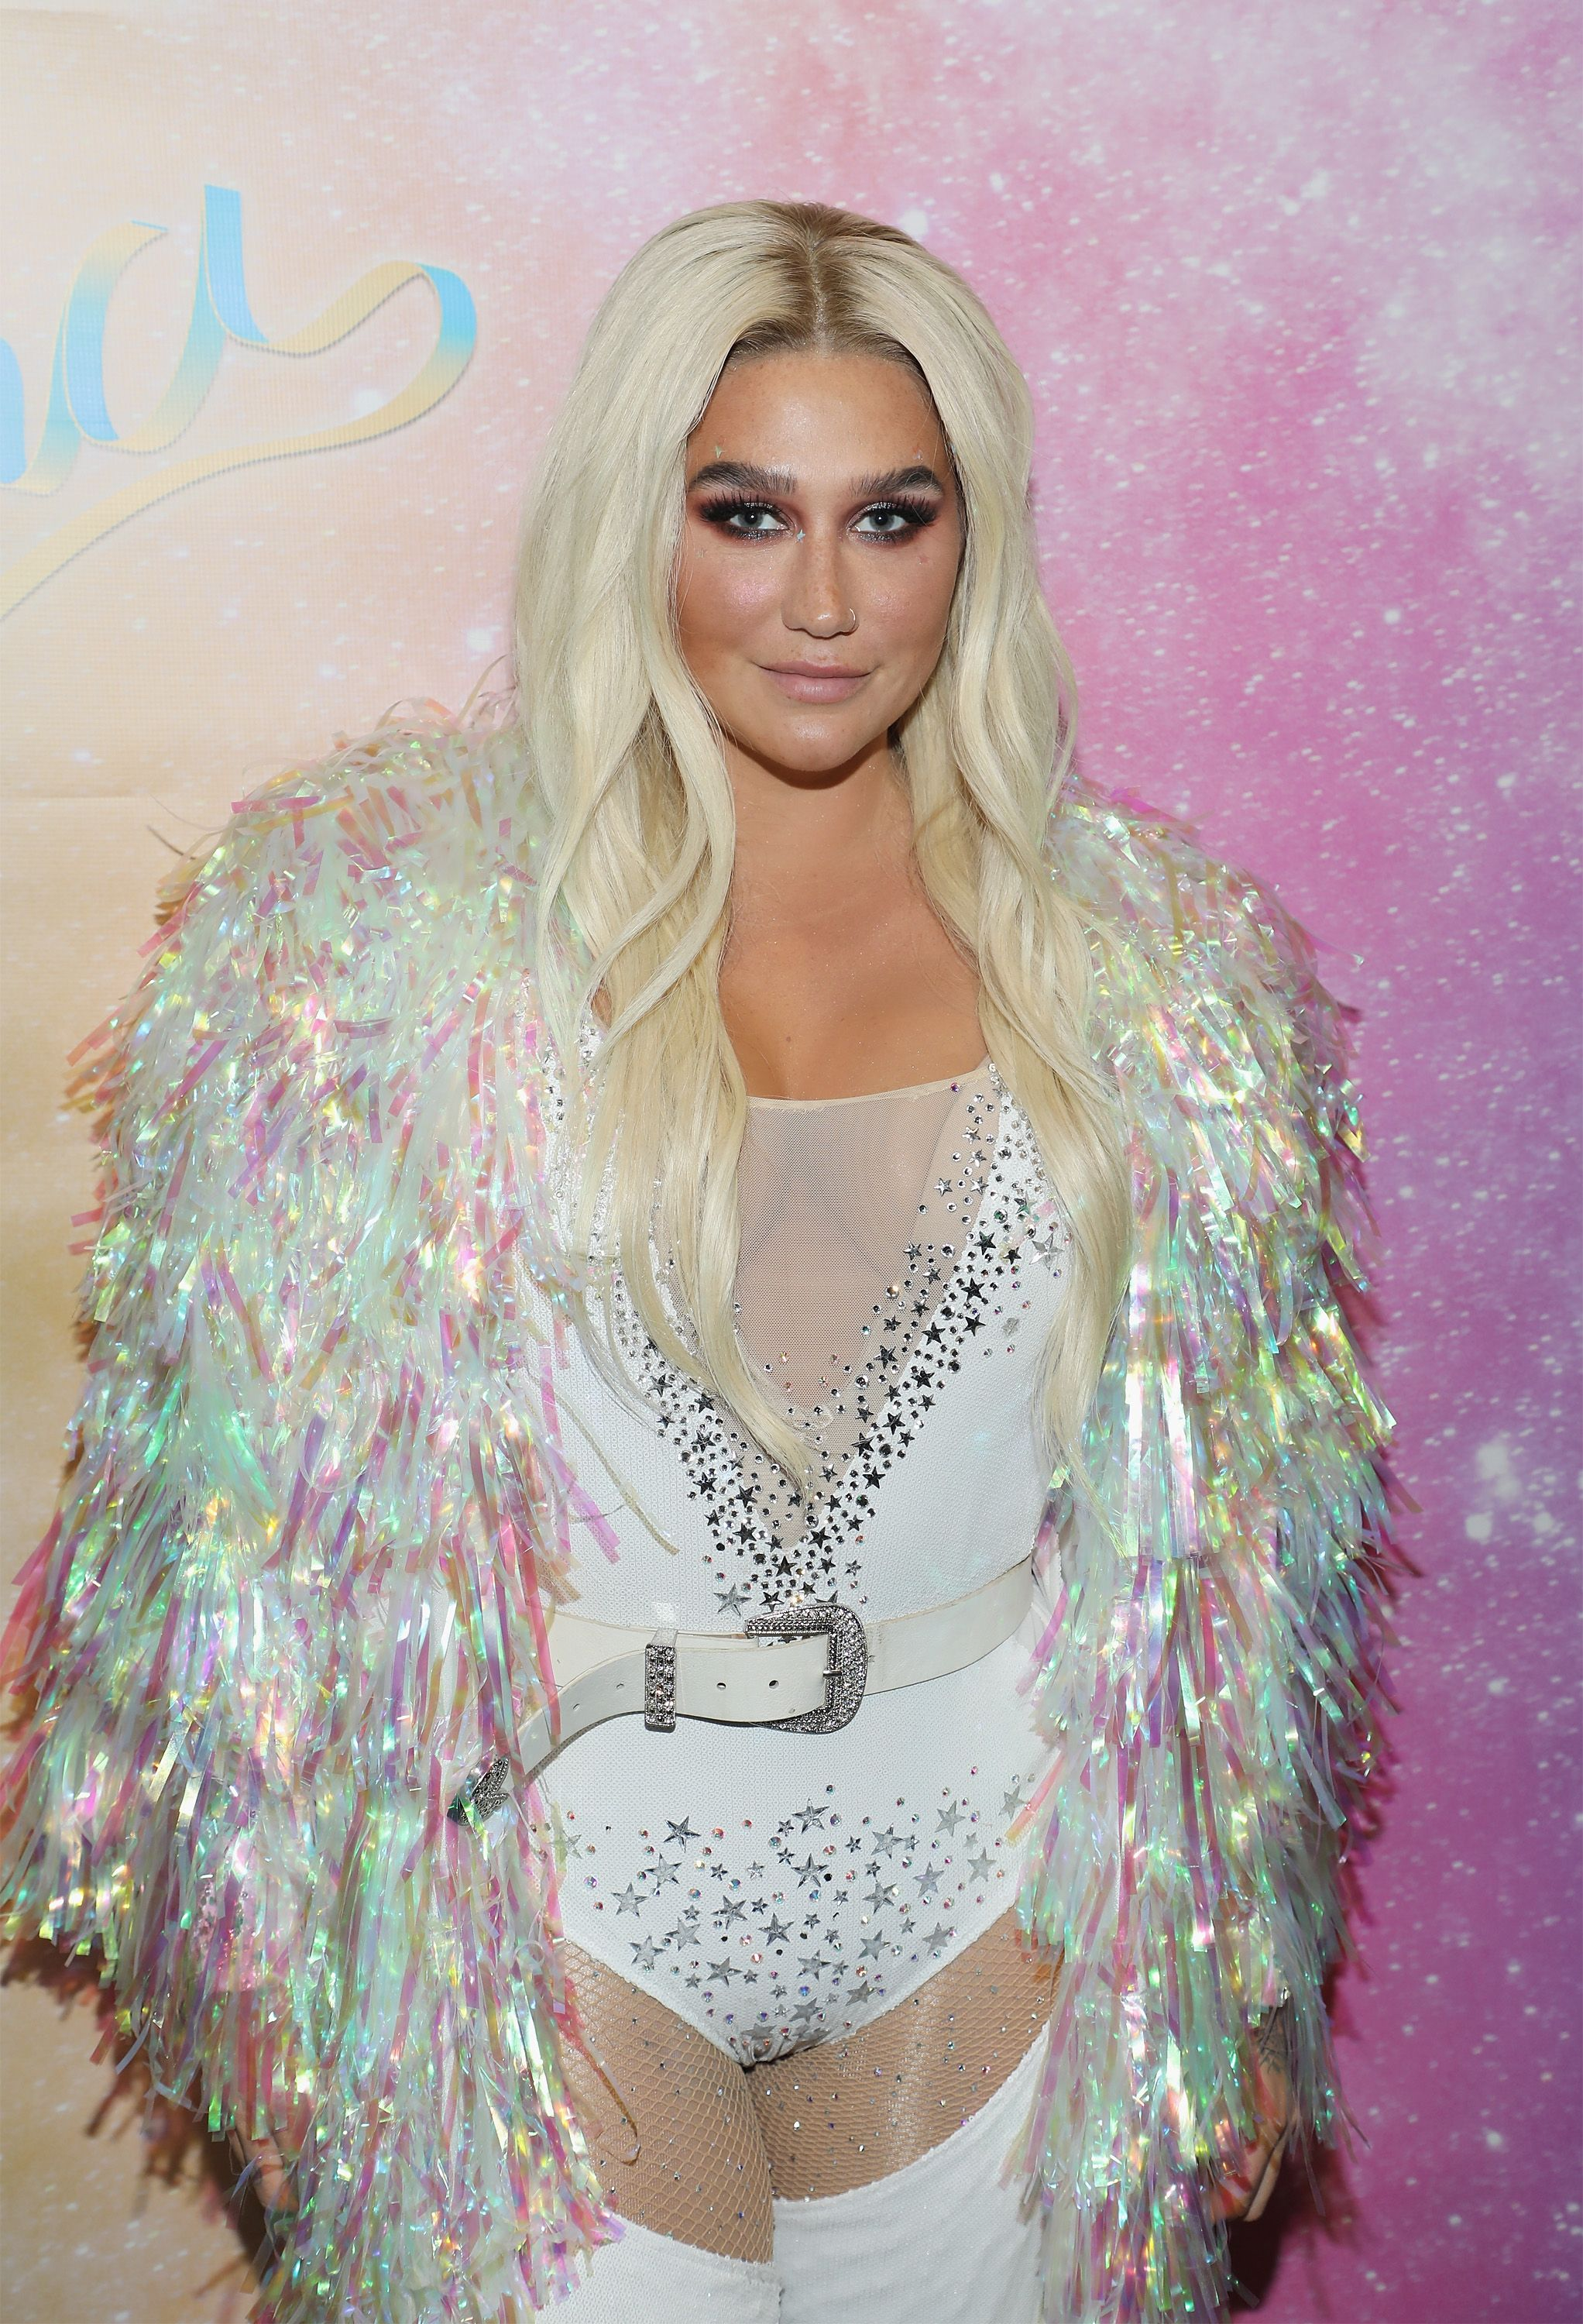 Kesha This is much more of a cameo than an ascent to stardom, but before she came in on her 'Rainbow,' Kesha was on an episode of The Simple Life alongside Paris Hilton and Nicole Richie. In the episode, Paris and Nicole tr y to set up Kesha's mom on a date, and Kesha looks the most 2005 she could possibly ever look.